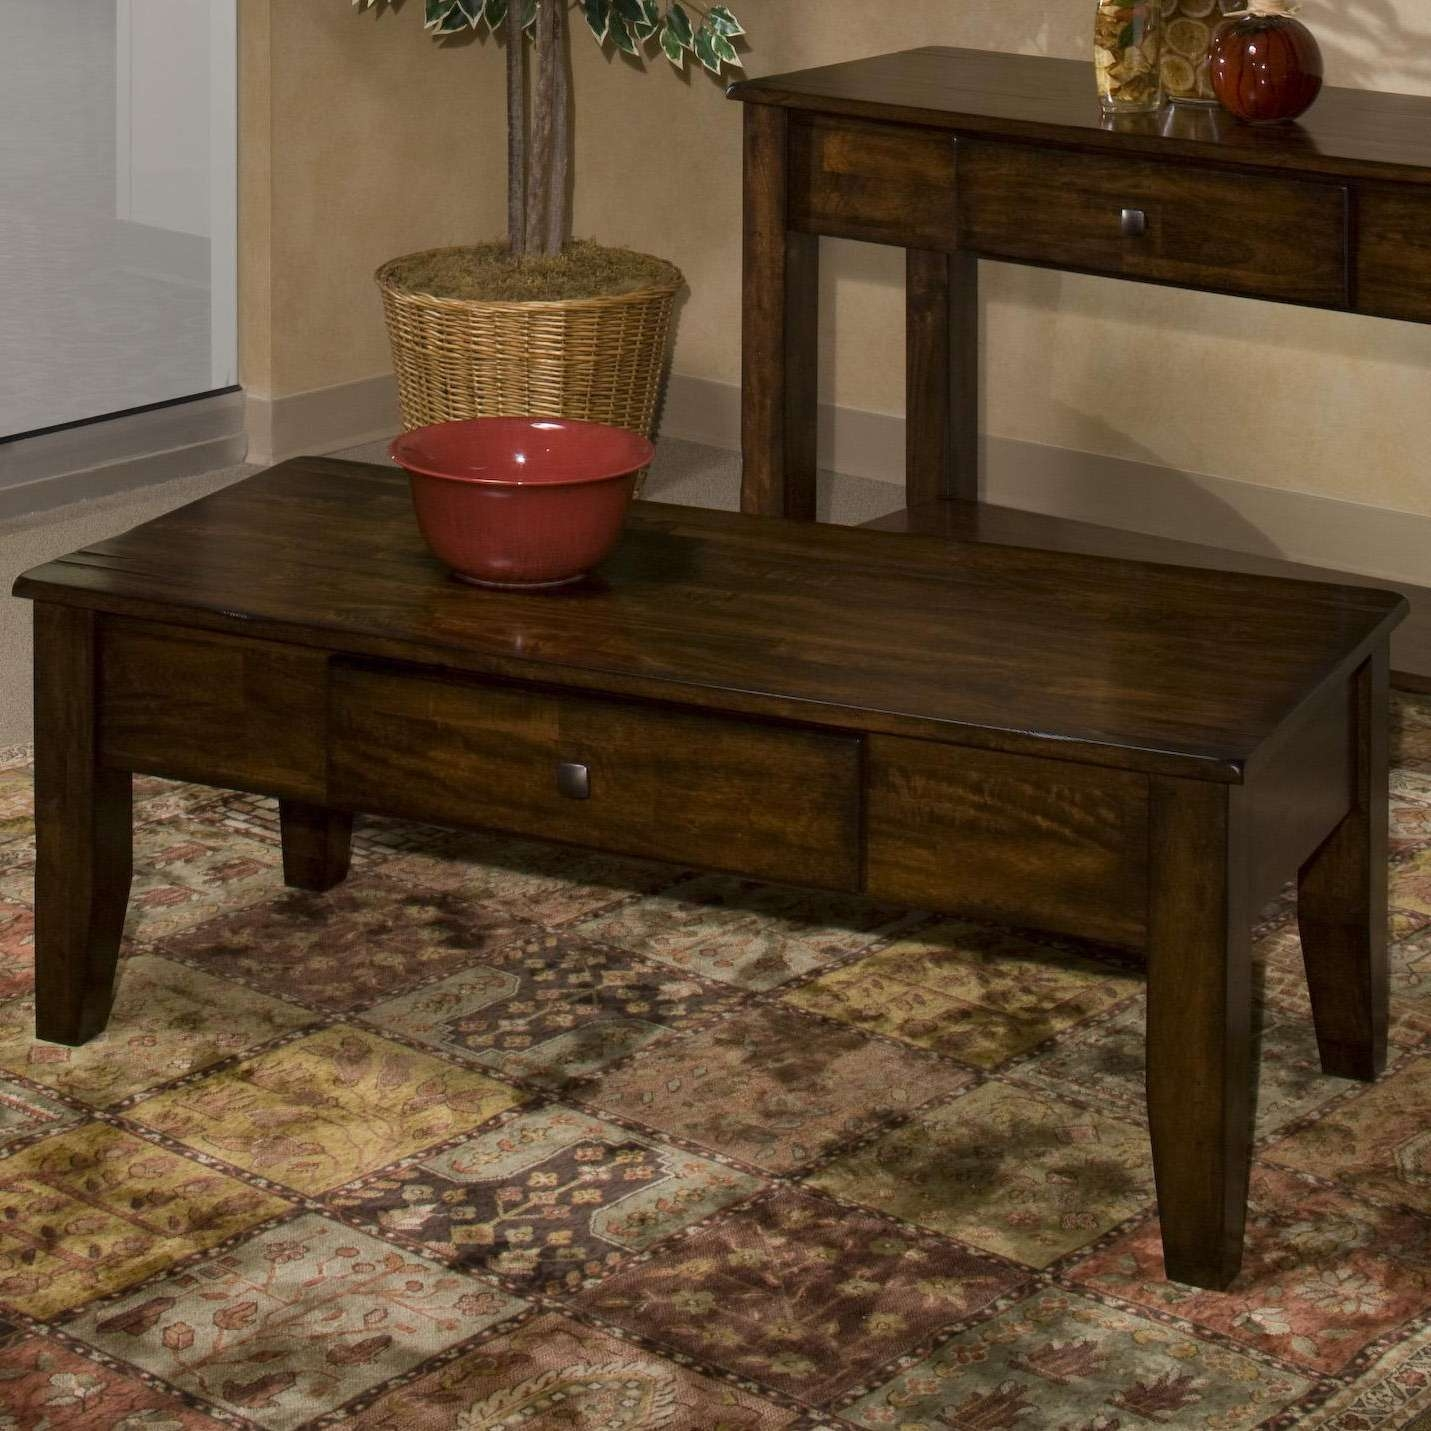 Wayside Furniture Intended For Well Known Mango Wood Coffee Tables (View 19 of 20)